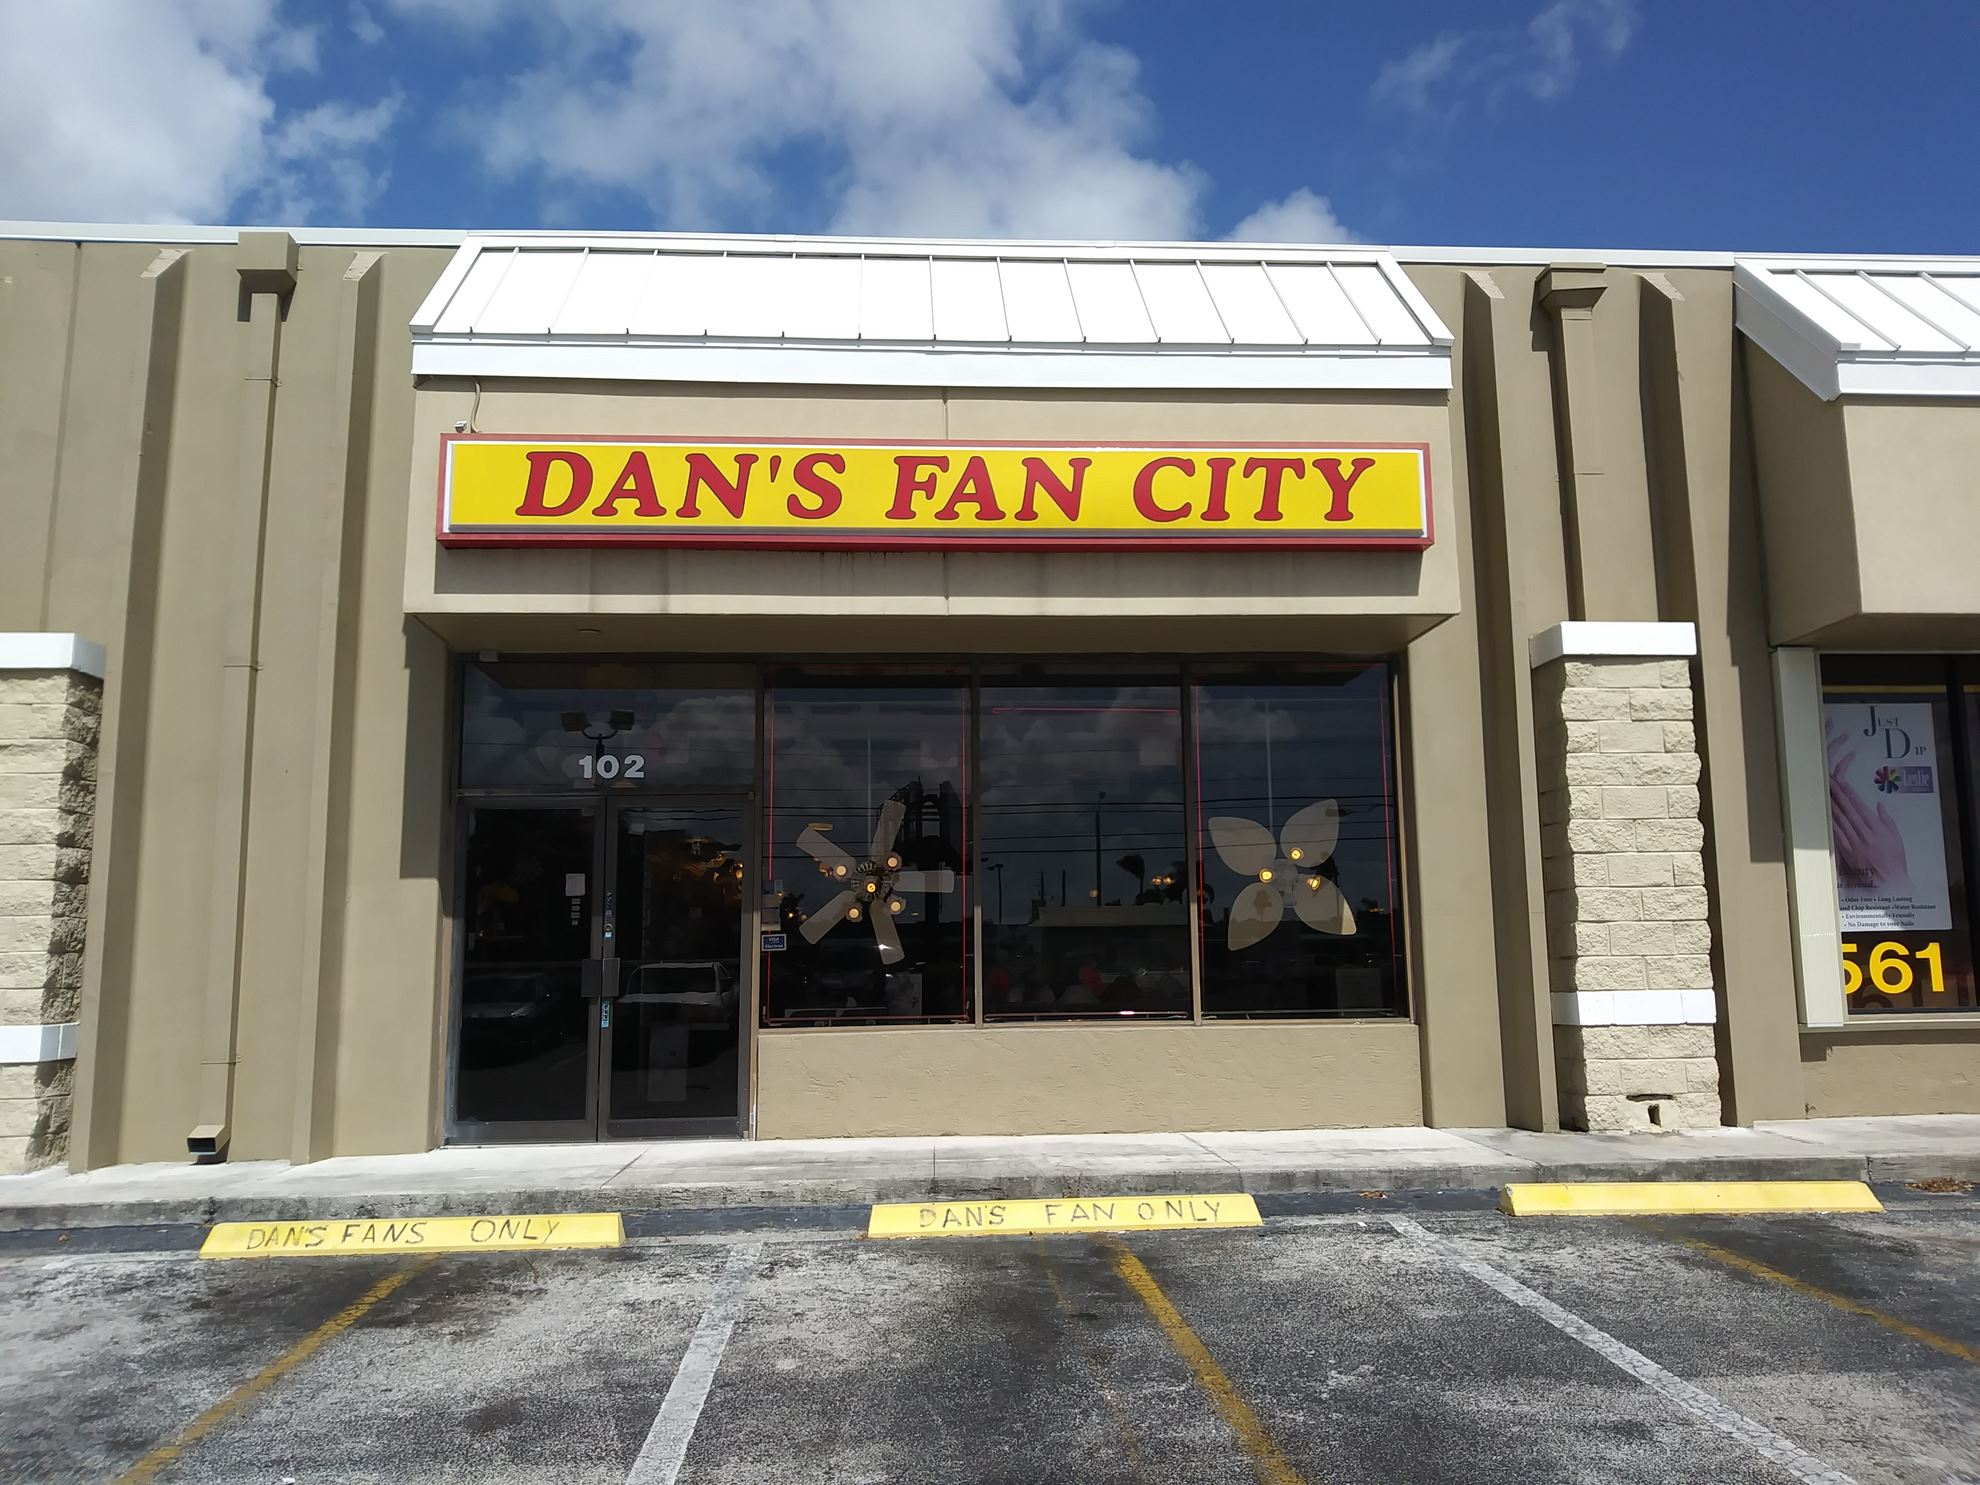 Dans fan city in w palm beach fl